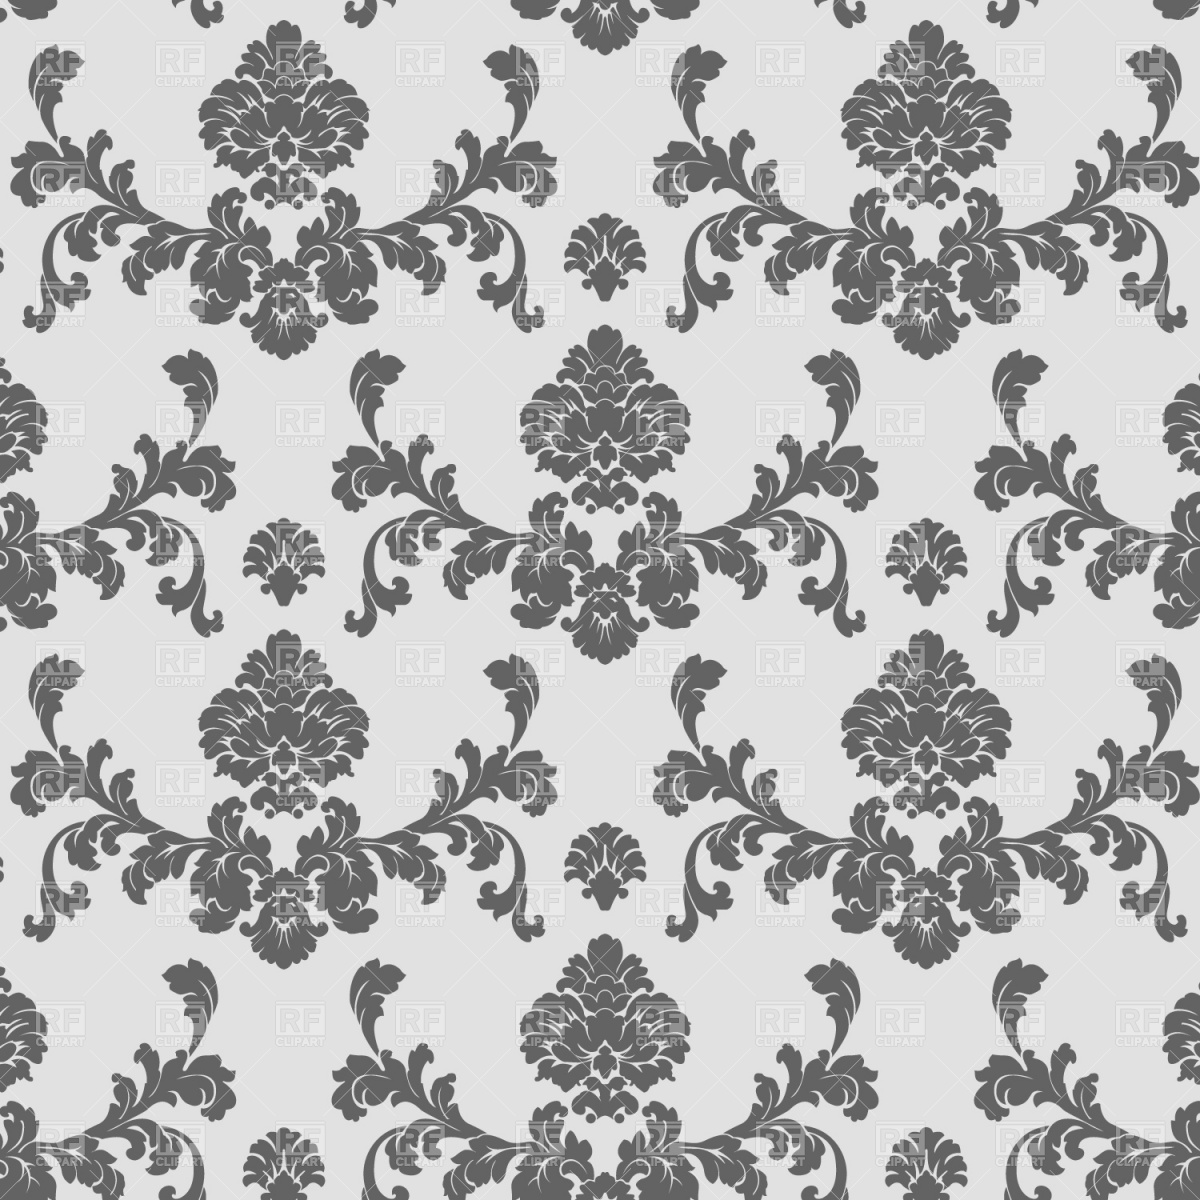 Clipart wallpaper patterns free 40+] Royalty Free Wallpaper Patterns on WallpaperSafari free